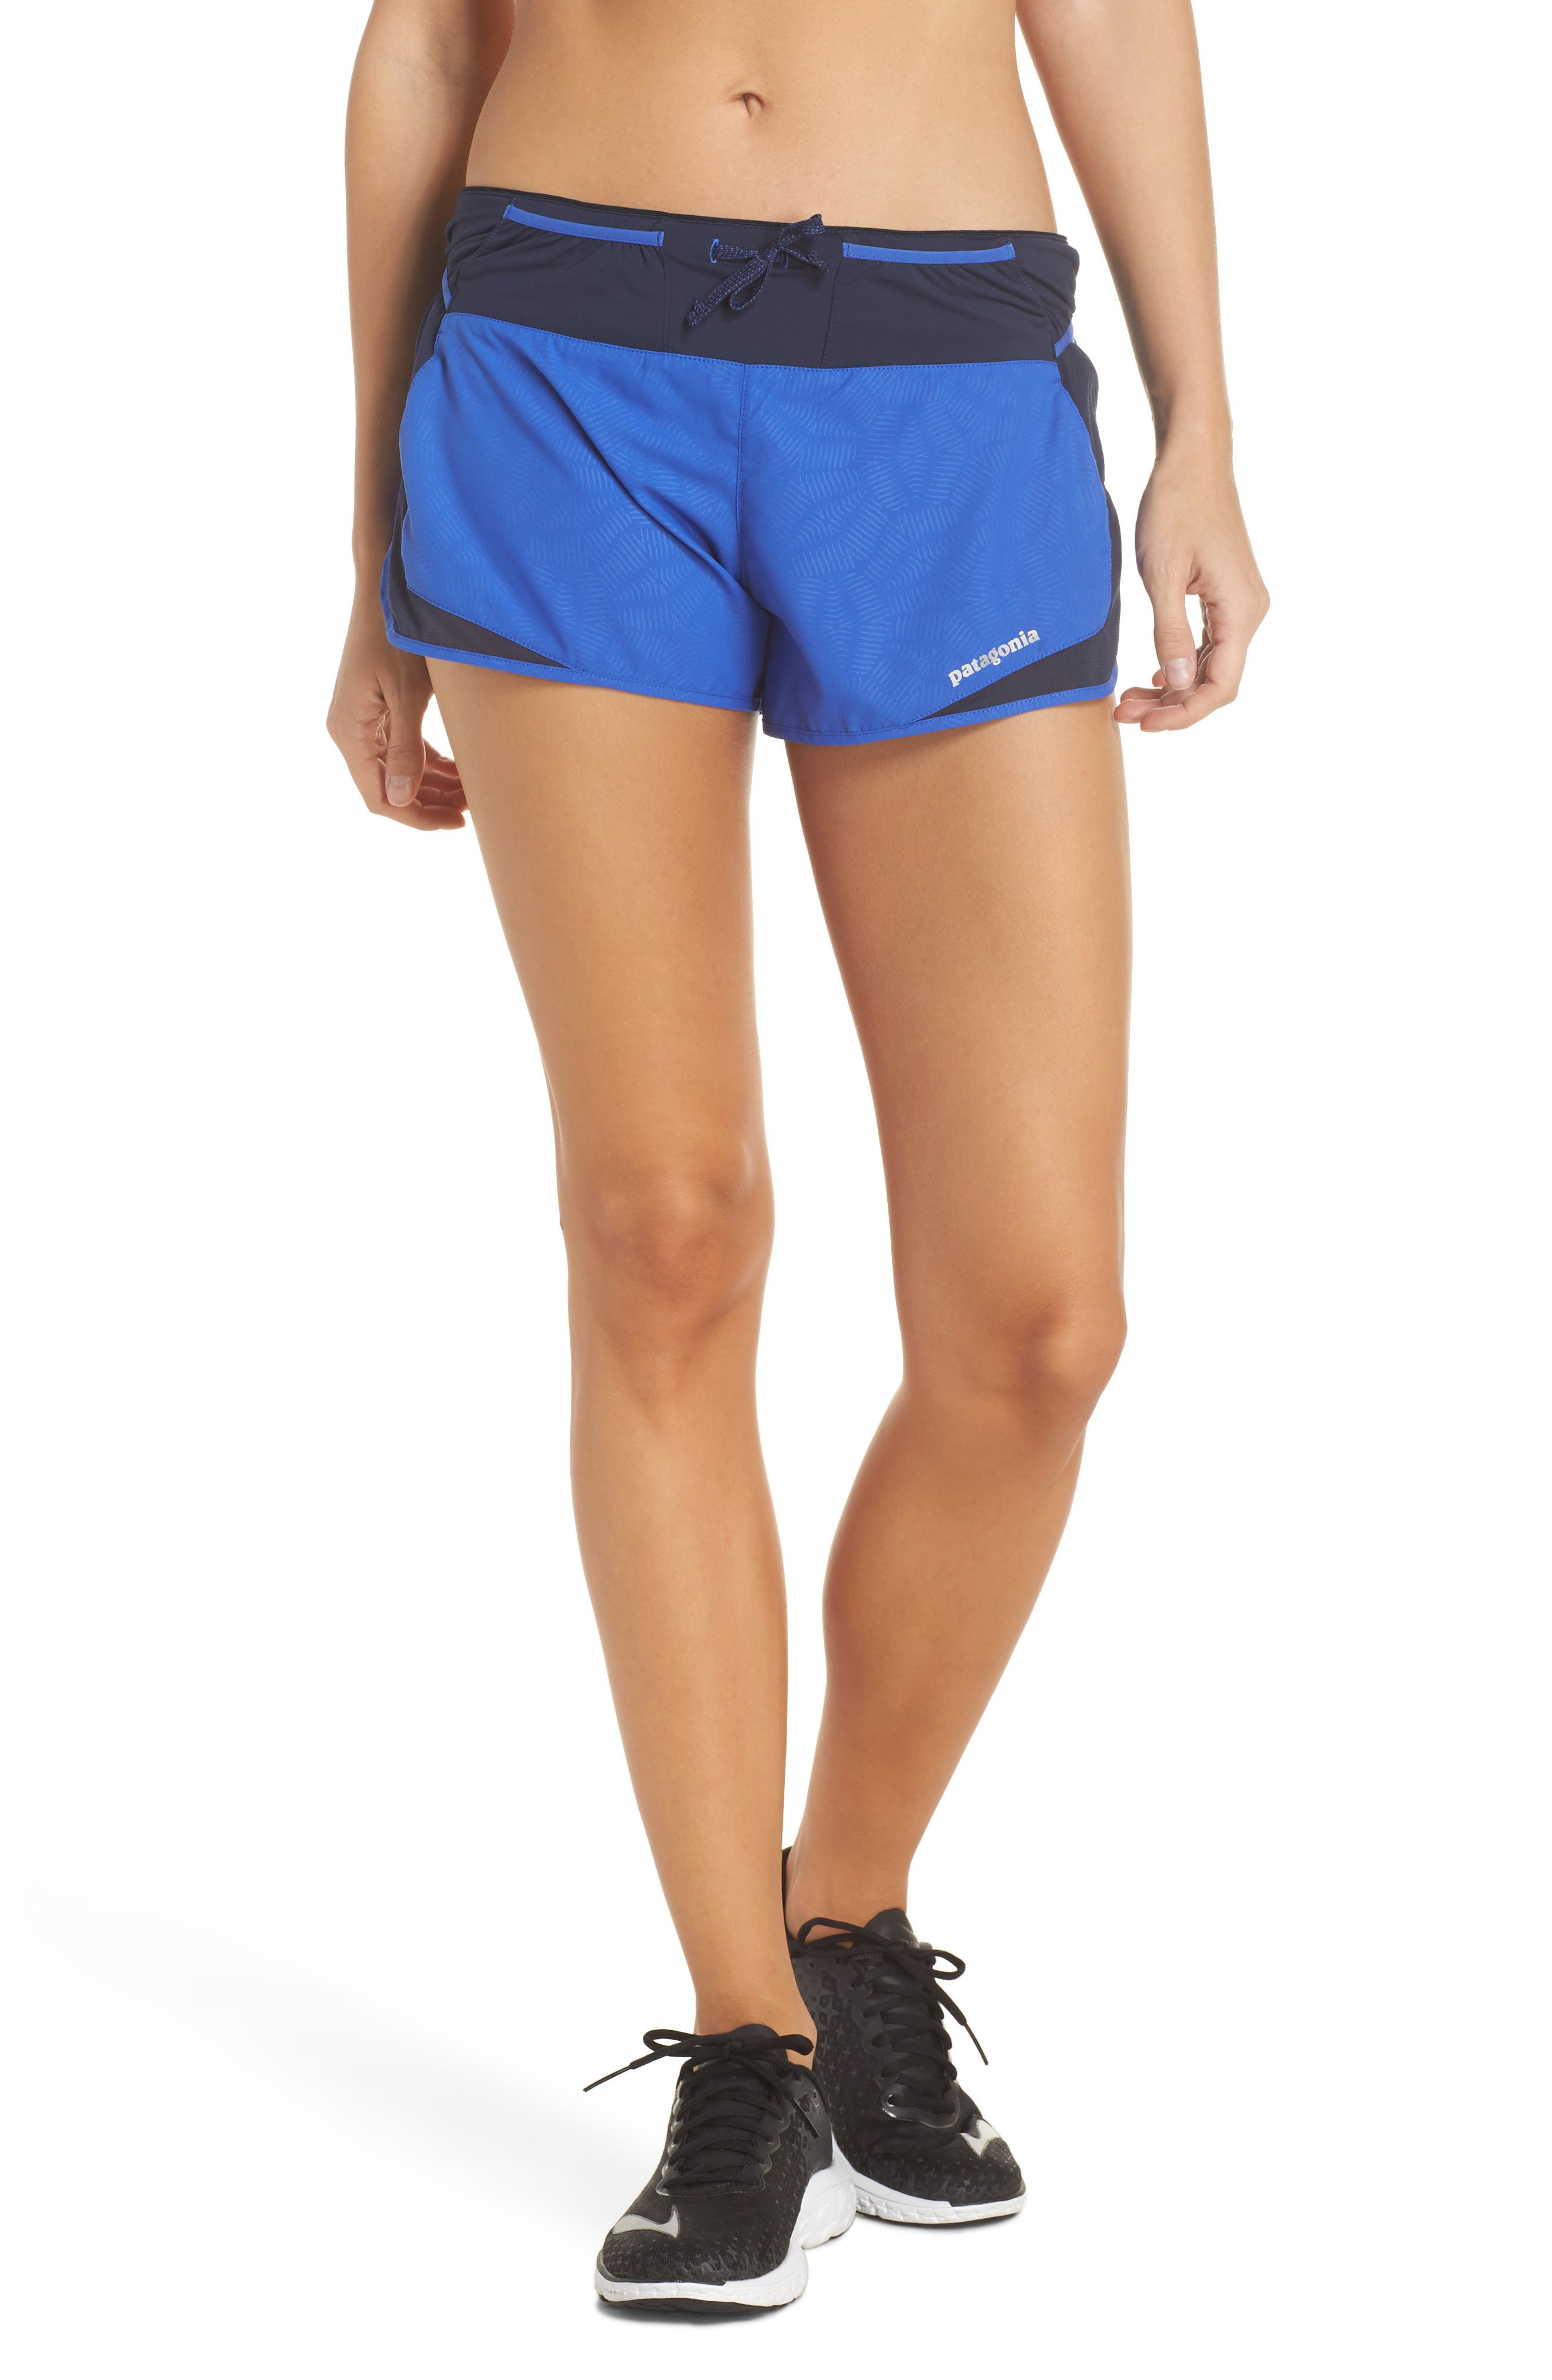 Strider Pro Trail Running Shorts,                             Main thumbnail 1, color,                             Hexy - Imperial Blue